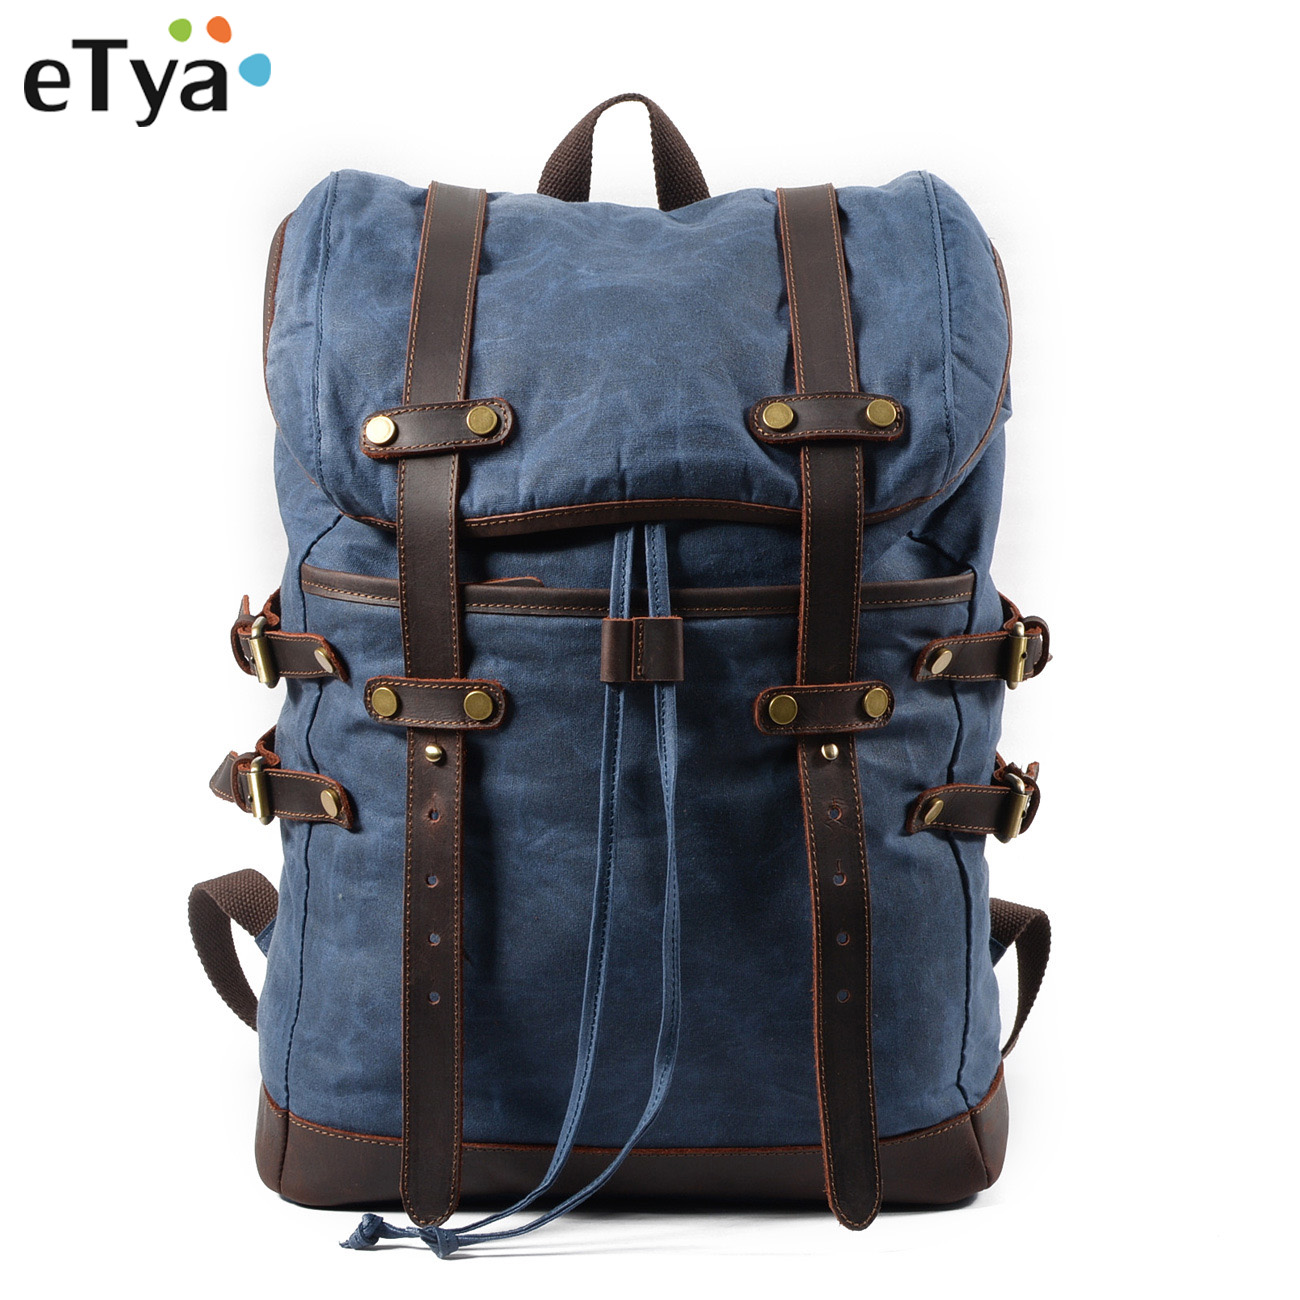 eTya Canvas Men's Luggage Bag Casual Backpack Male Waterproof Fashion Travel Bag Large Capacity Travel Organizer Storage Bag high quality travel 6 pieces set of luggage separate organizer large capacity storage bag cubic shoe bag travel bag